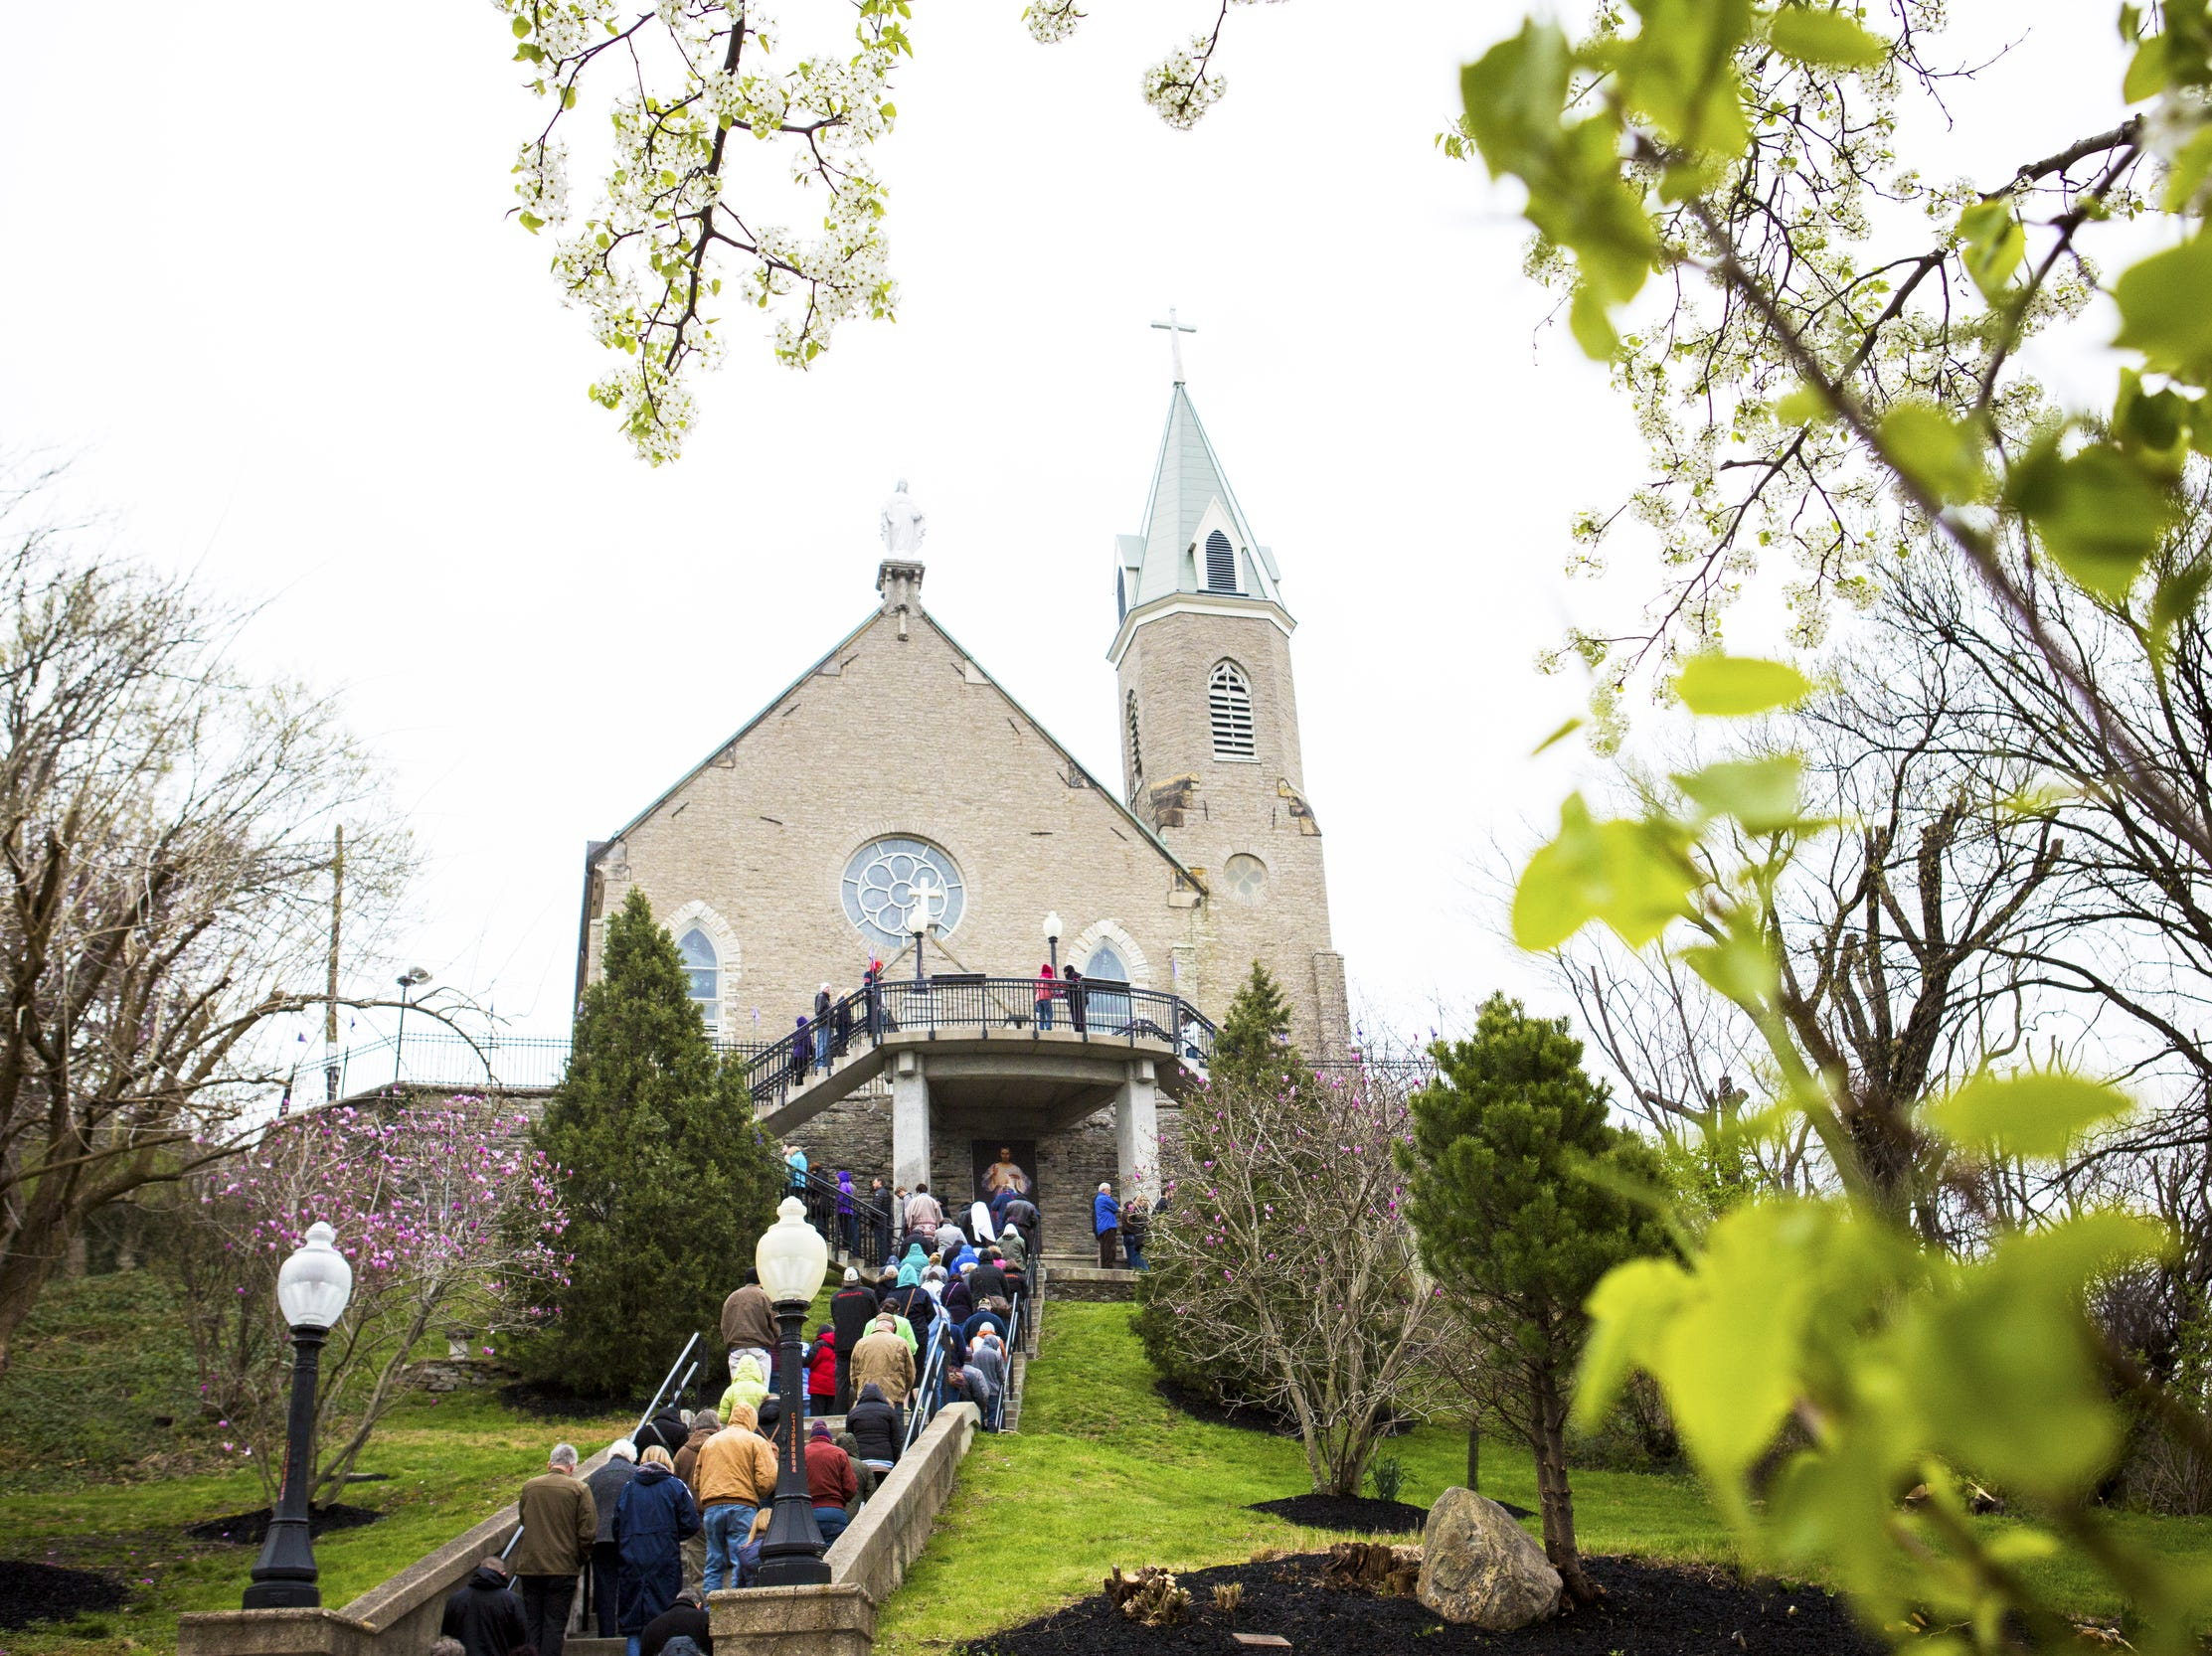 Thousands gather to make their annual Good Friday pilgrimage at Holy Cross-Immaculata Church in Mount Adams Friday, March 25, 2016. This tradition is more than 150 years old.